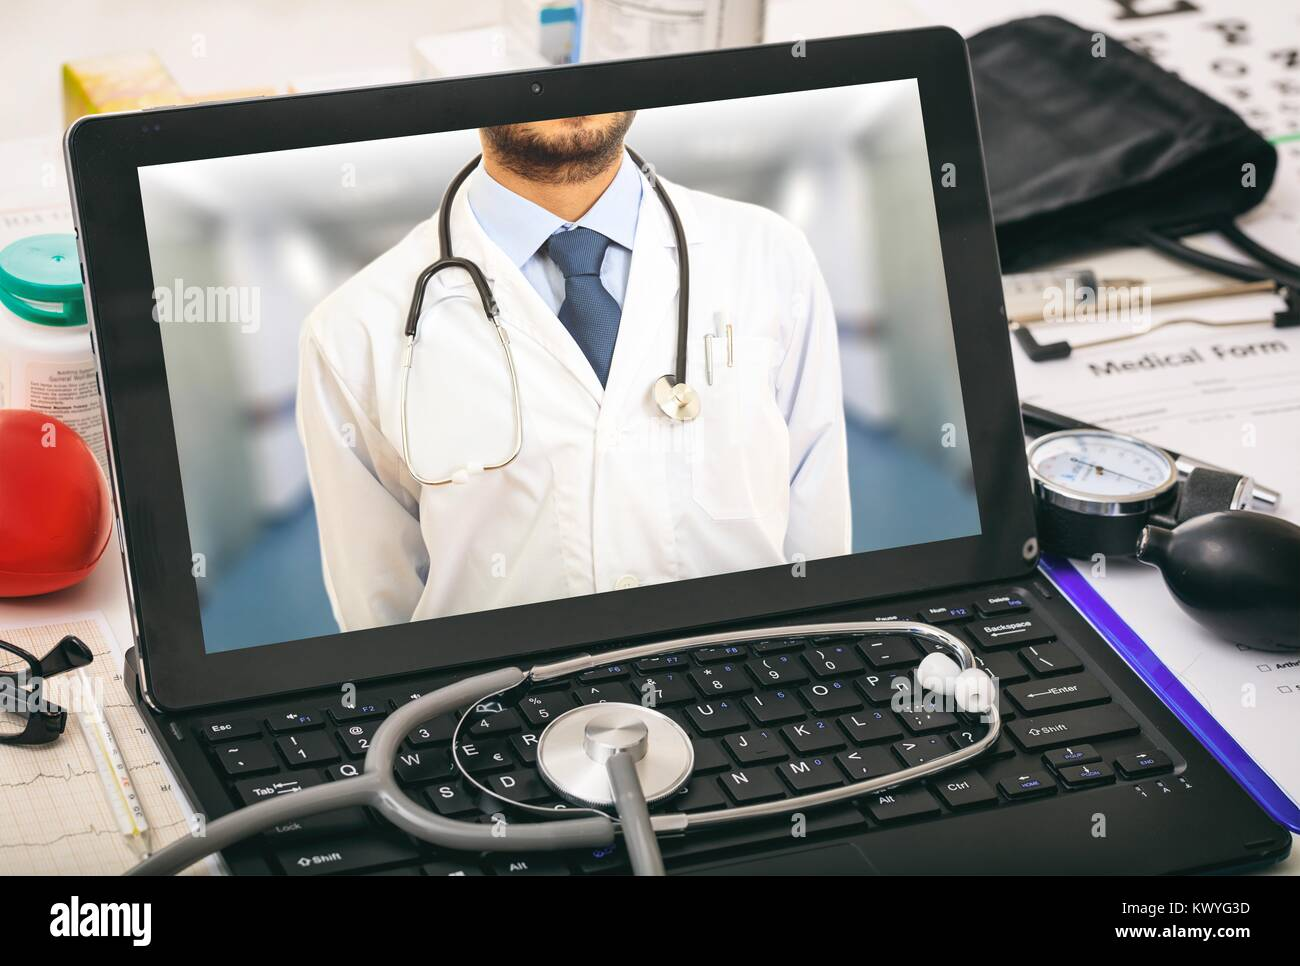 Laptop's screen showing a doctor on a desk - Stock Image